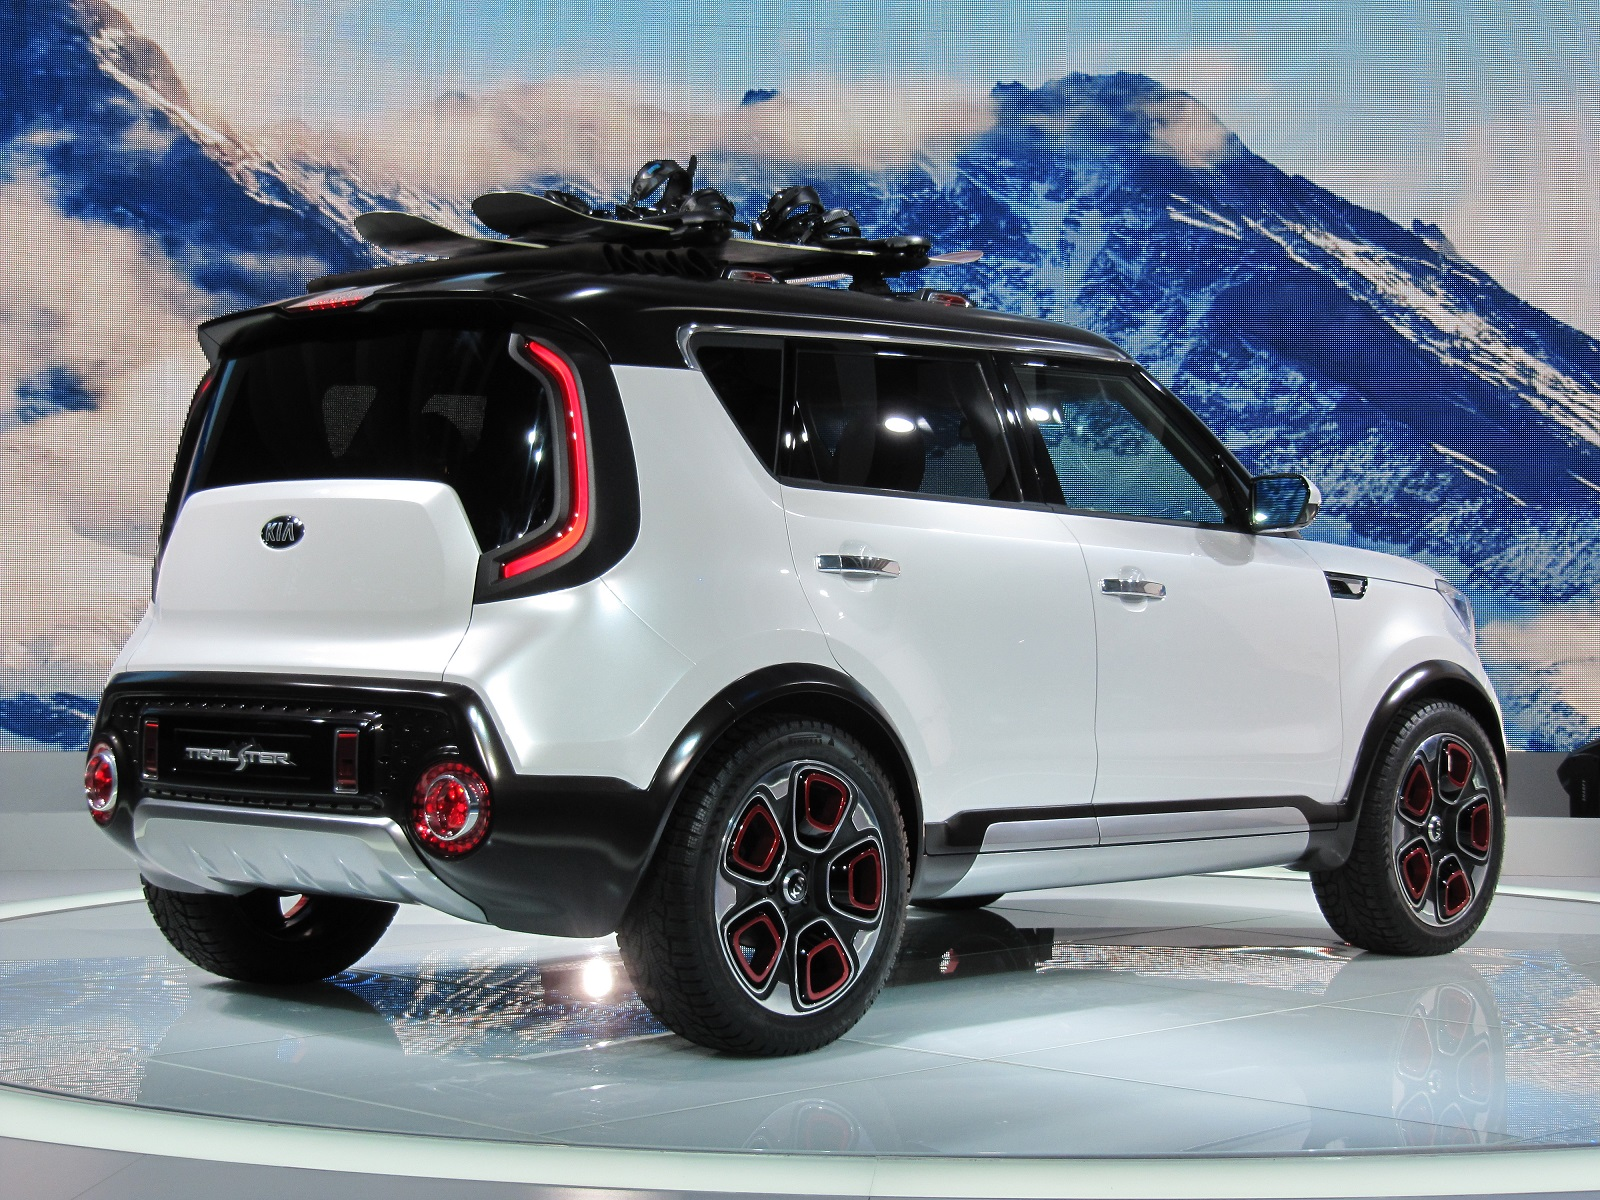 This Kia Might Remind You A Whole Lot Of The Soul However Trail Ster Has An Adventurous Twist To It Fit For Off Roading Concept Features